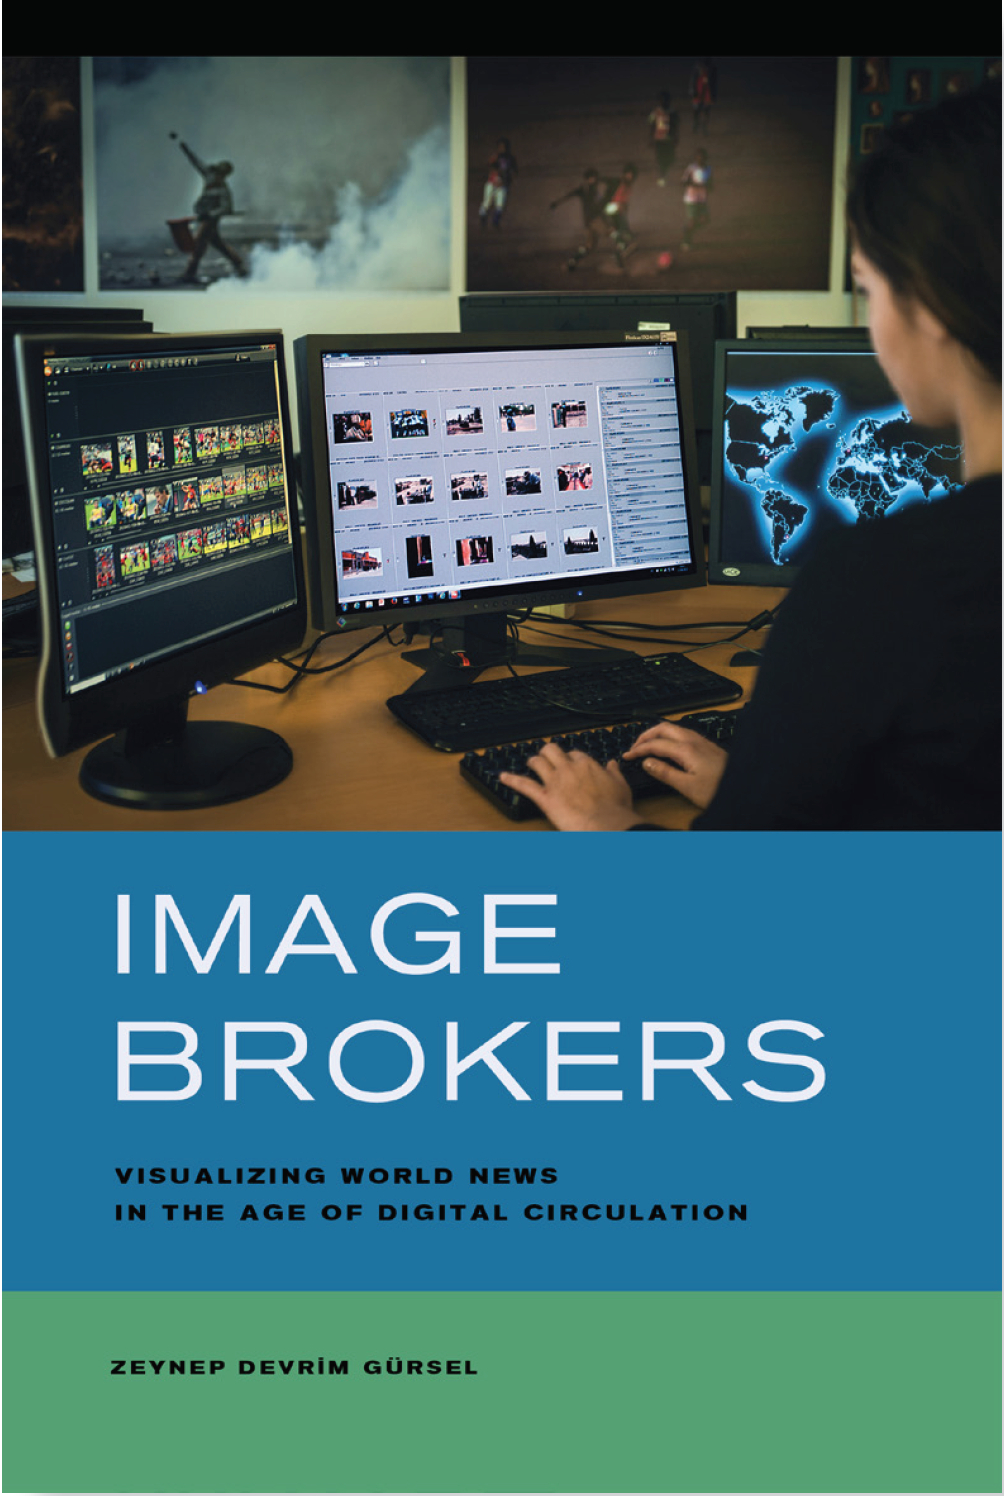 Gursel Image Brokers cover 1